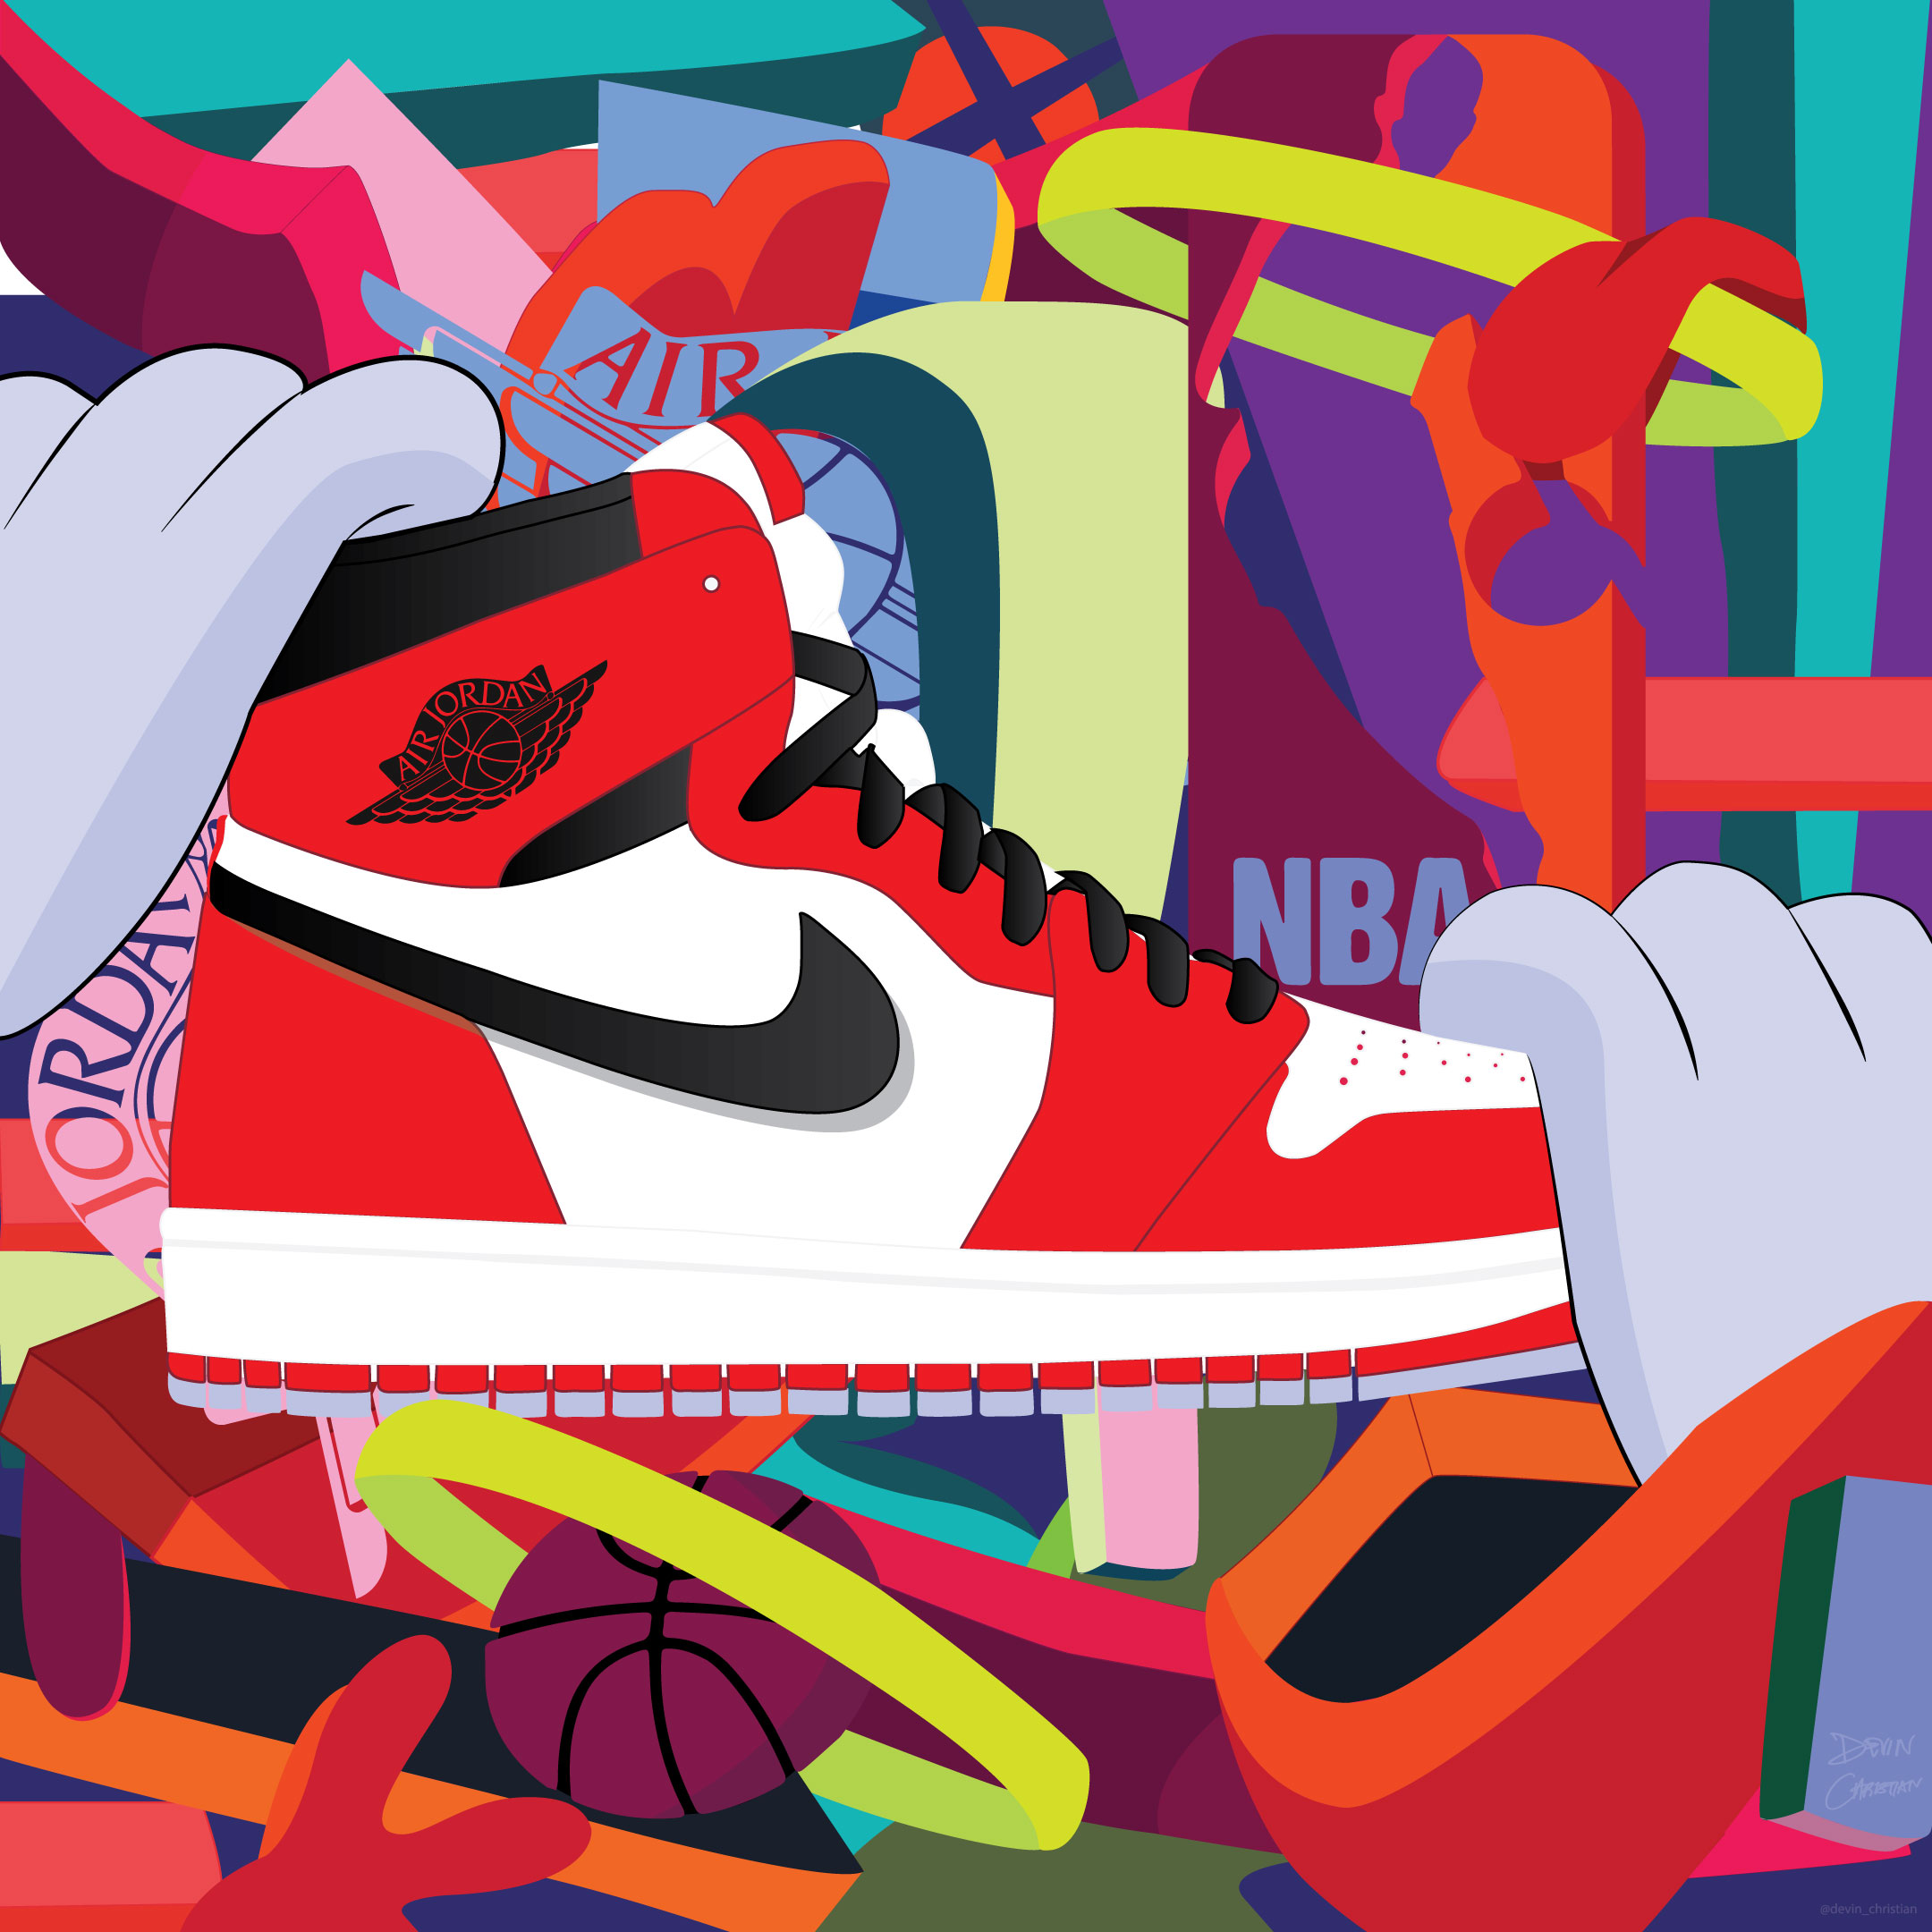 GD-Aj1-Series-Prints-KAWS.jpg